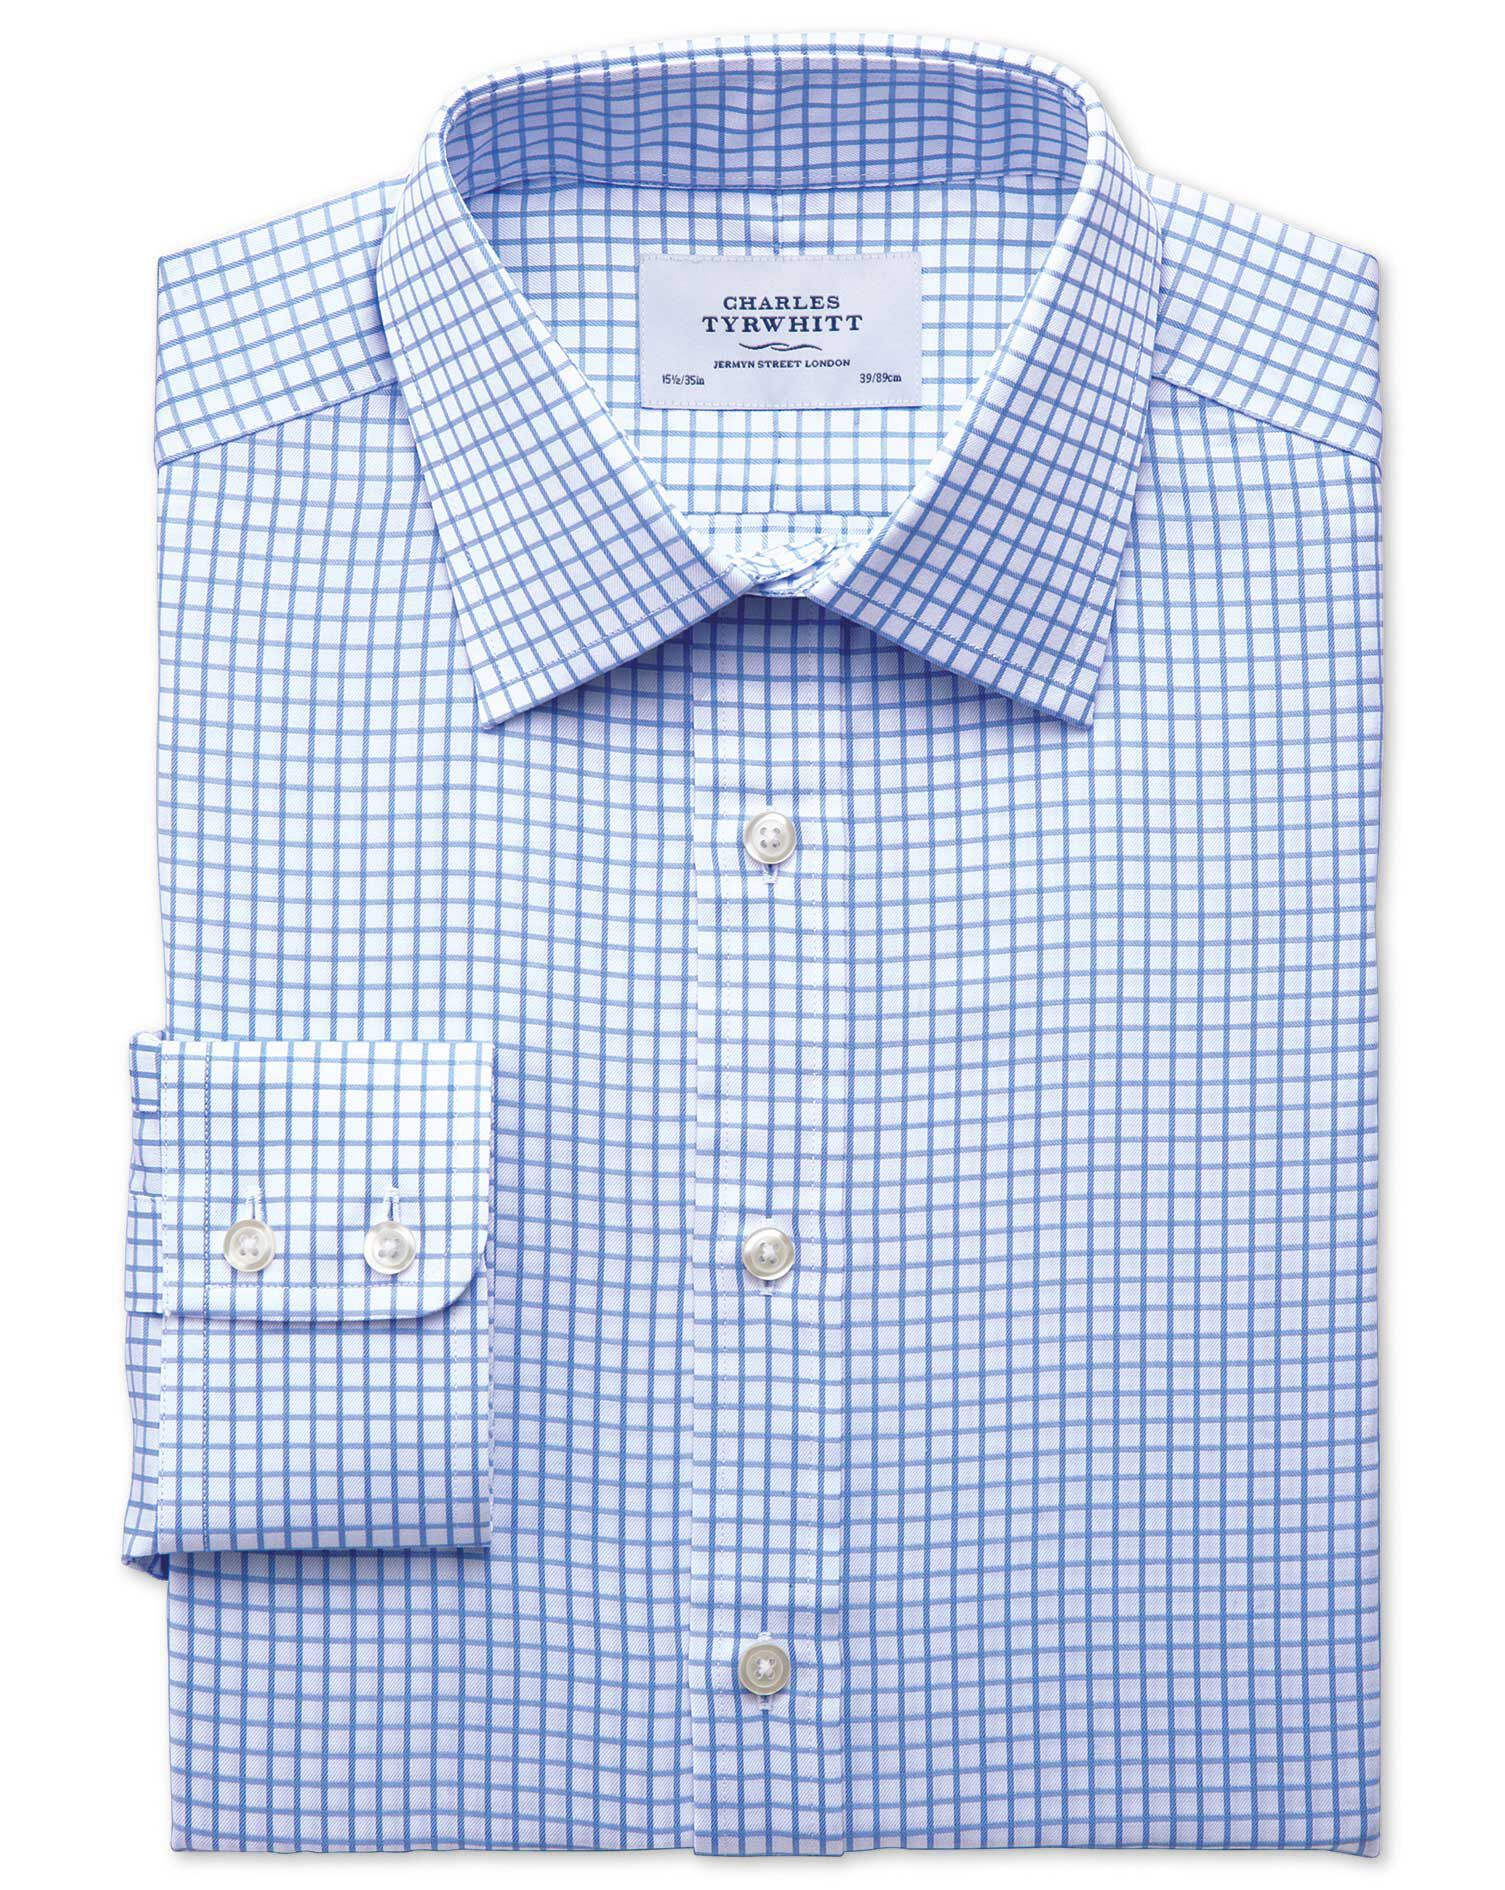 Classic Fit Twill Grid Check Sky Blue Cotton Formal Shirt Single Cuff Size 16.5/33 by Charles Tyrwhi